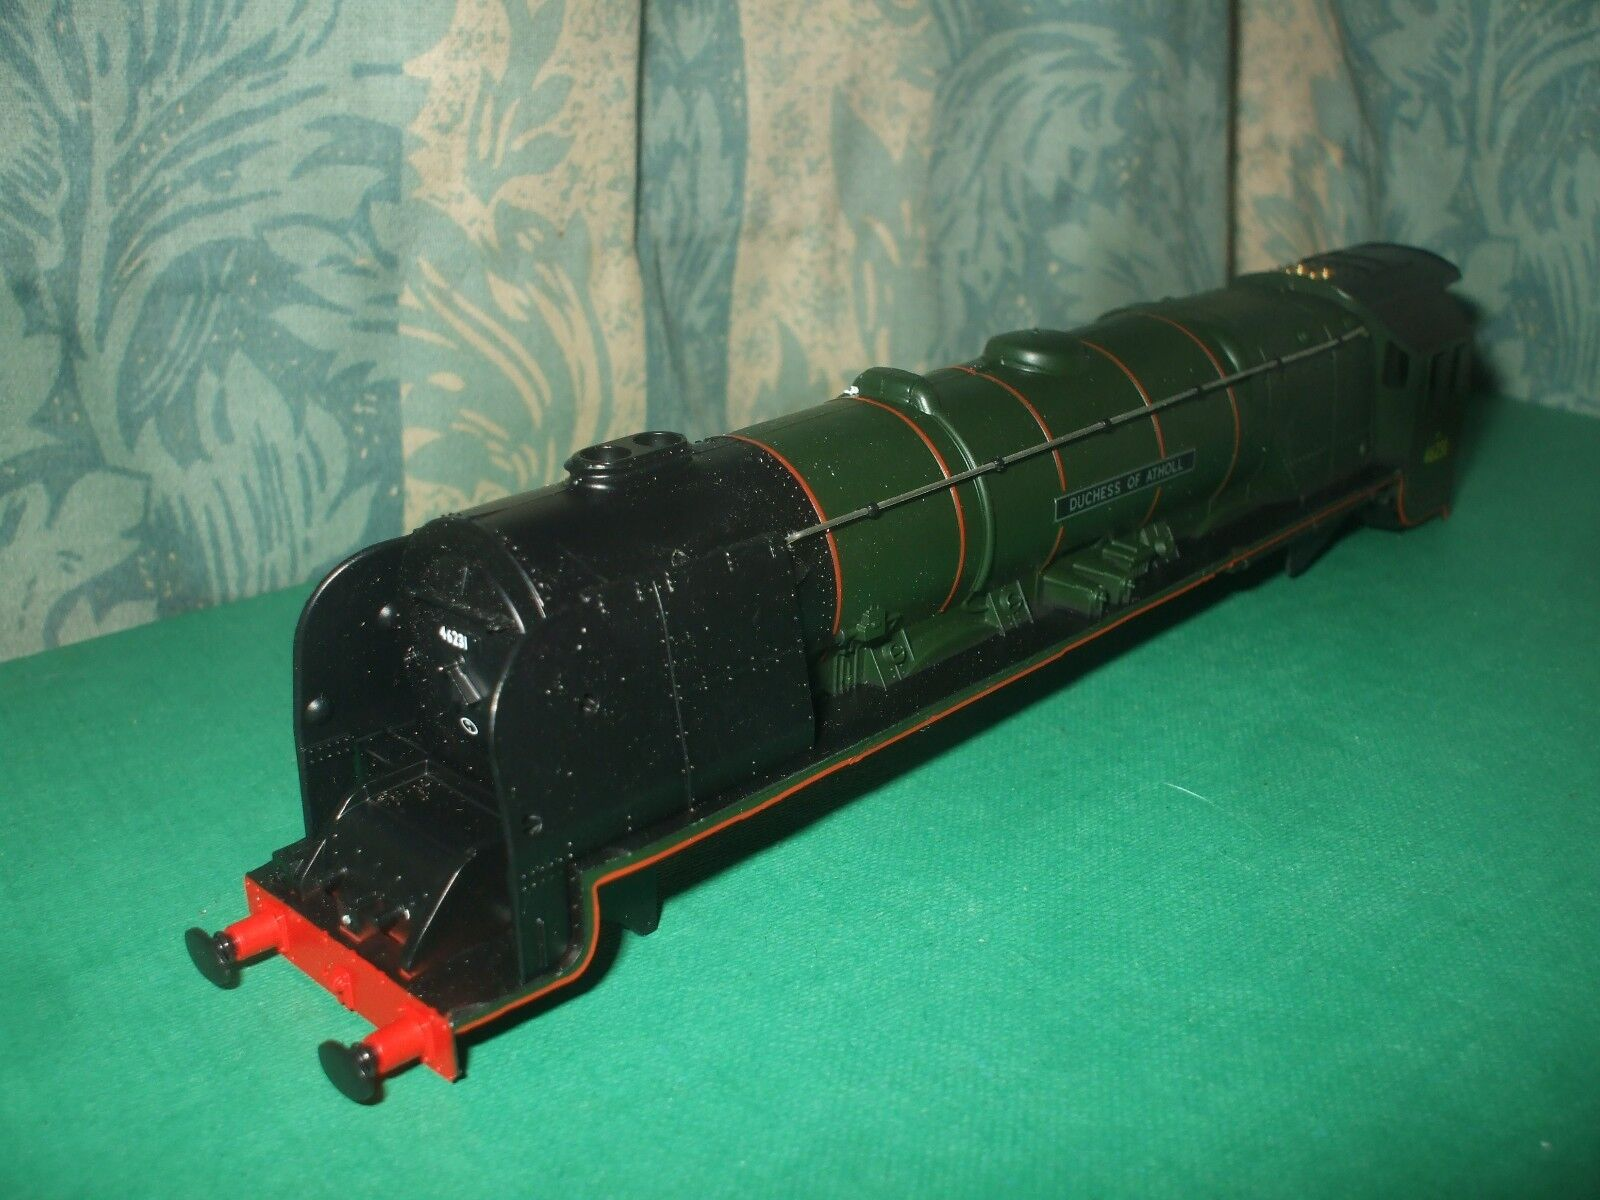 ventas de salida HORNBY EX LMS DUCHESS verde LOCO BODY ONLY ONLY ONLY - DUCHESS OF ATHOLL - No.1  calidad de primera clase